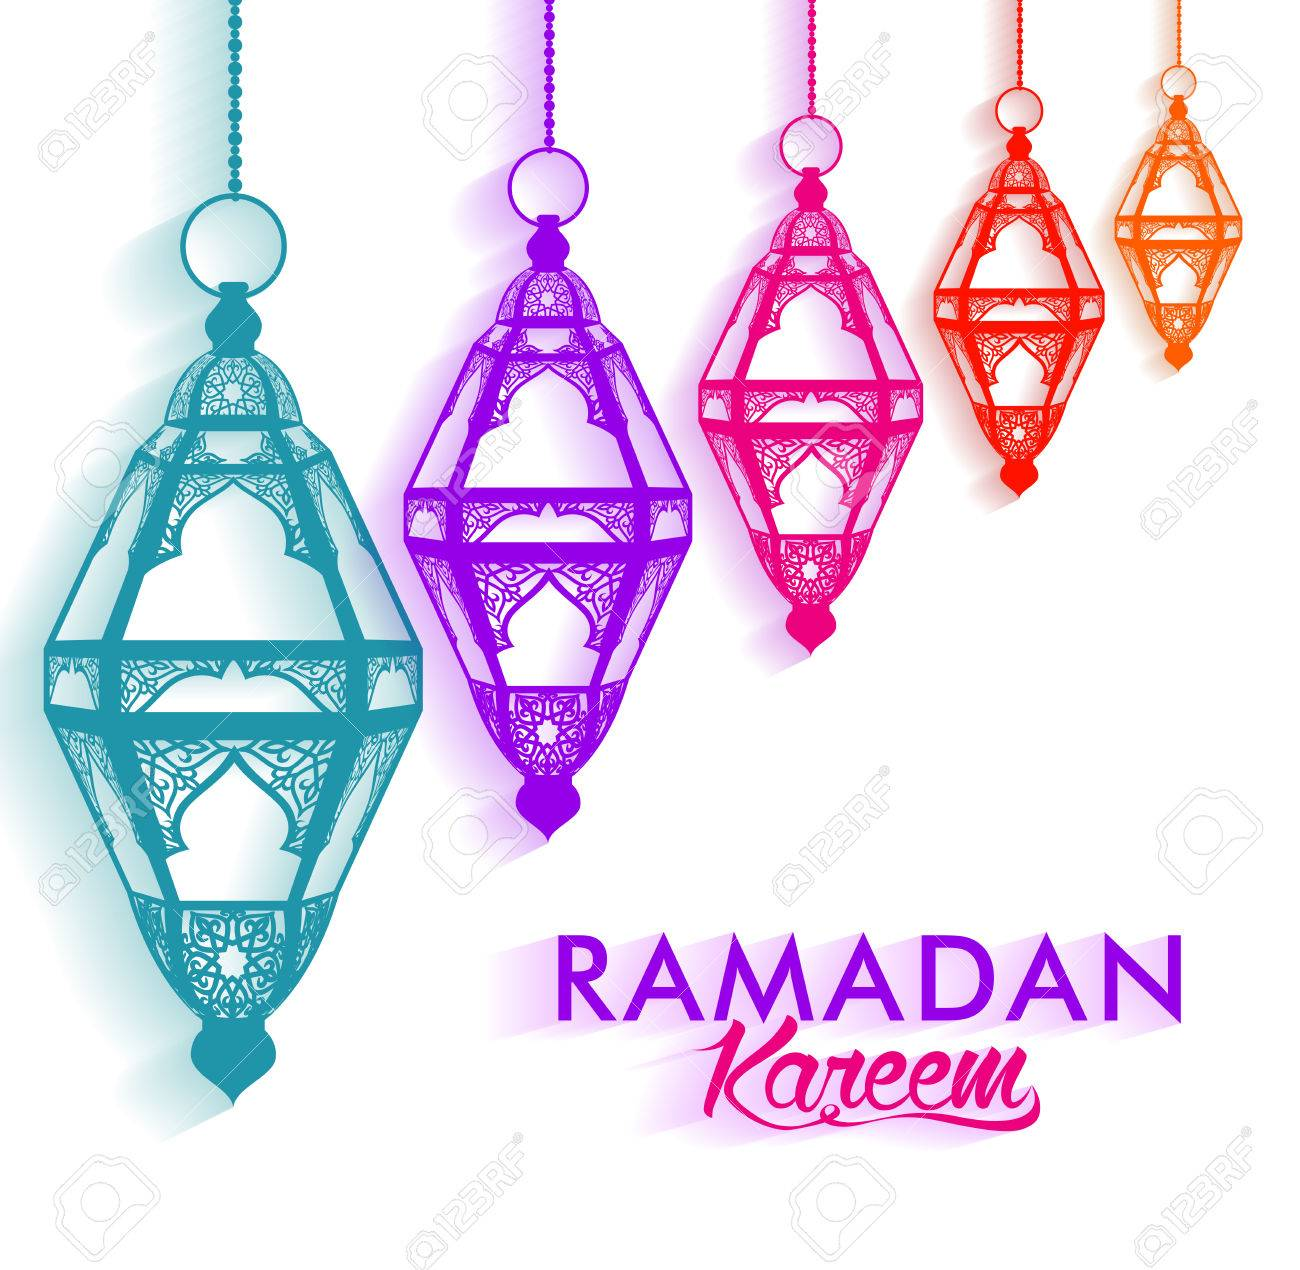 Colorful Elegant Ramadan Kareem Lanterns Or Fanous Hanging In White Background With Shadow For The Holy